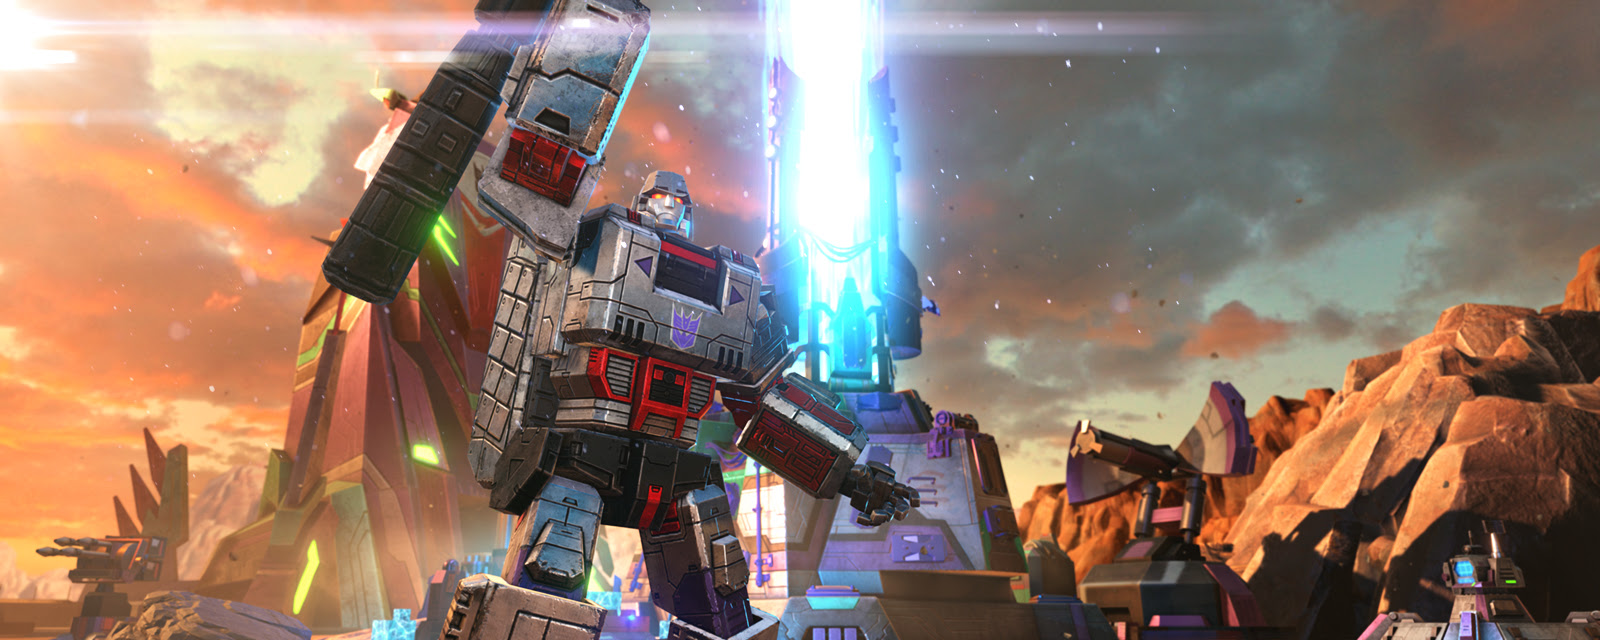 transformers: earth wars event - moonbase